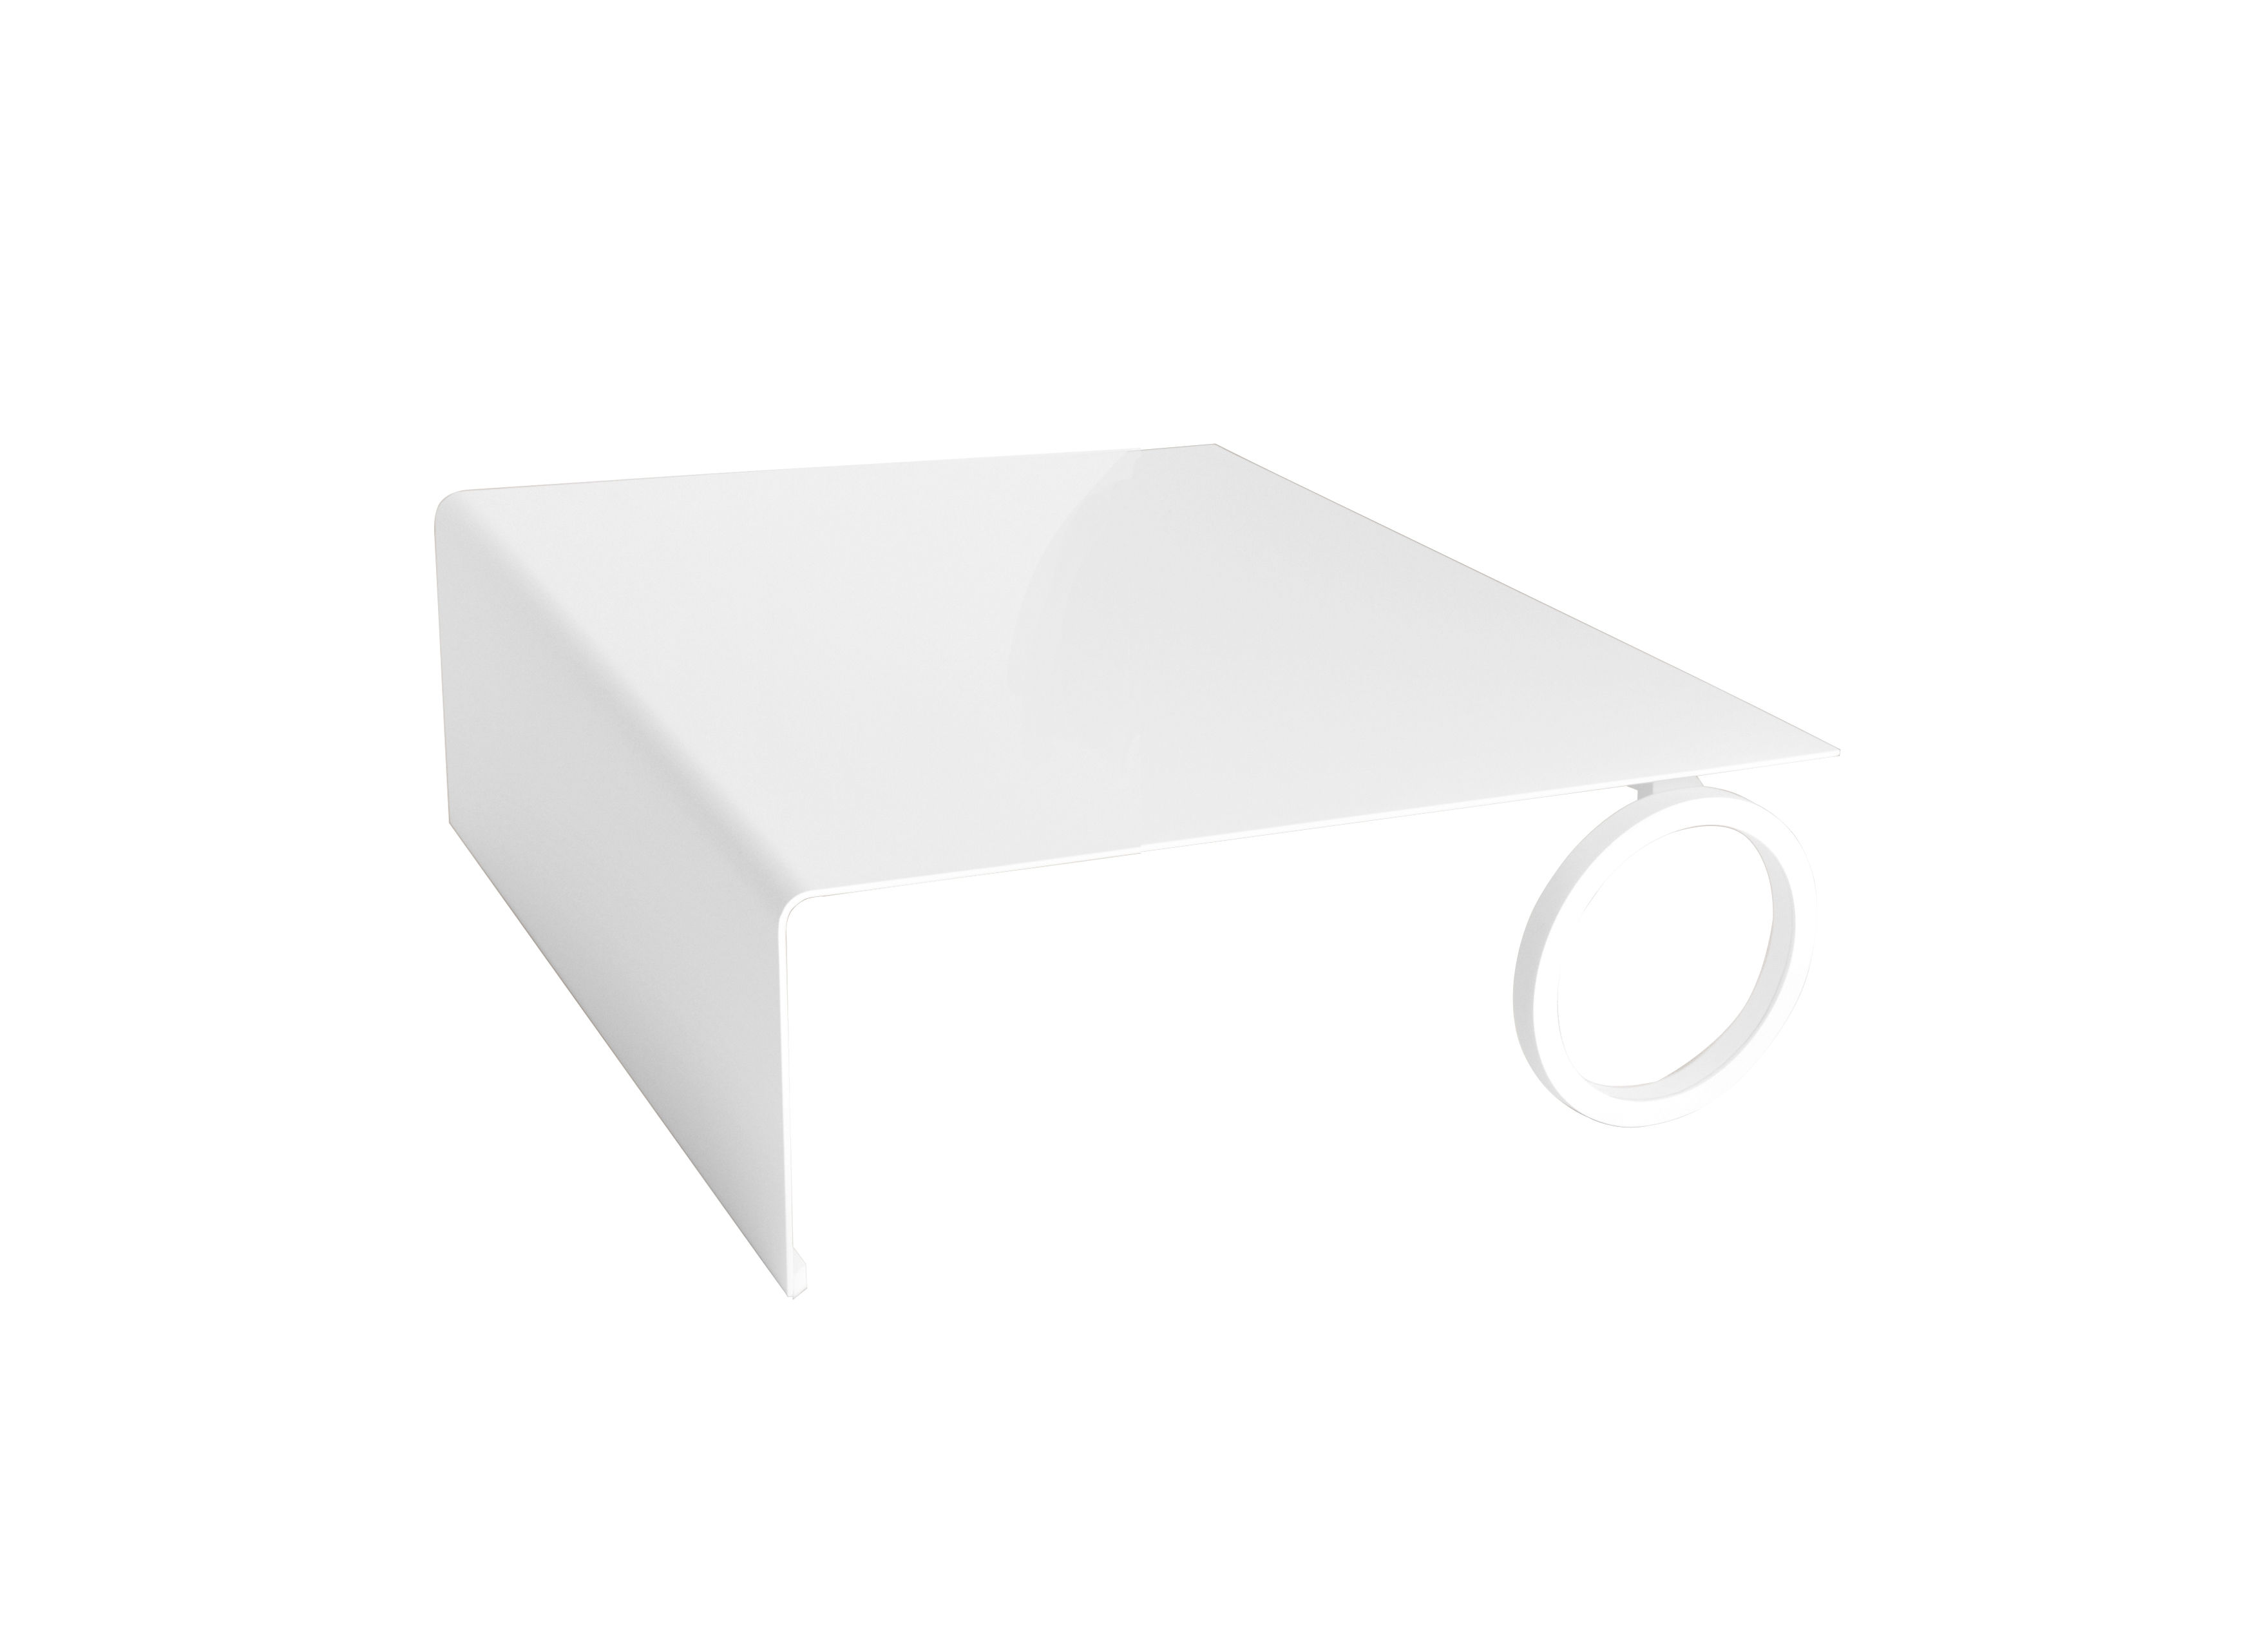 Rota coffee table 120 x 80 cm 120 x 80 cm white by for Coffee table 80 x 80